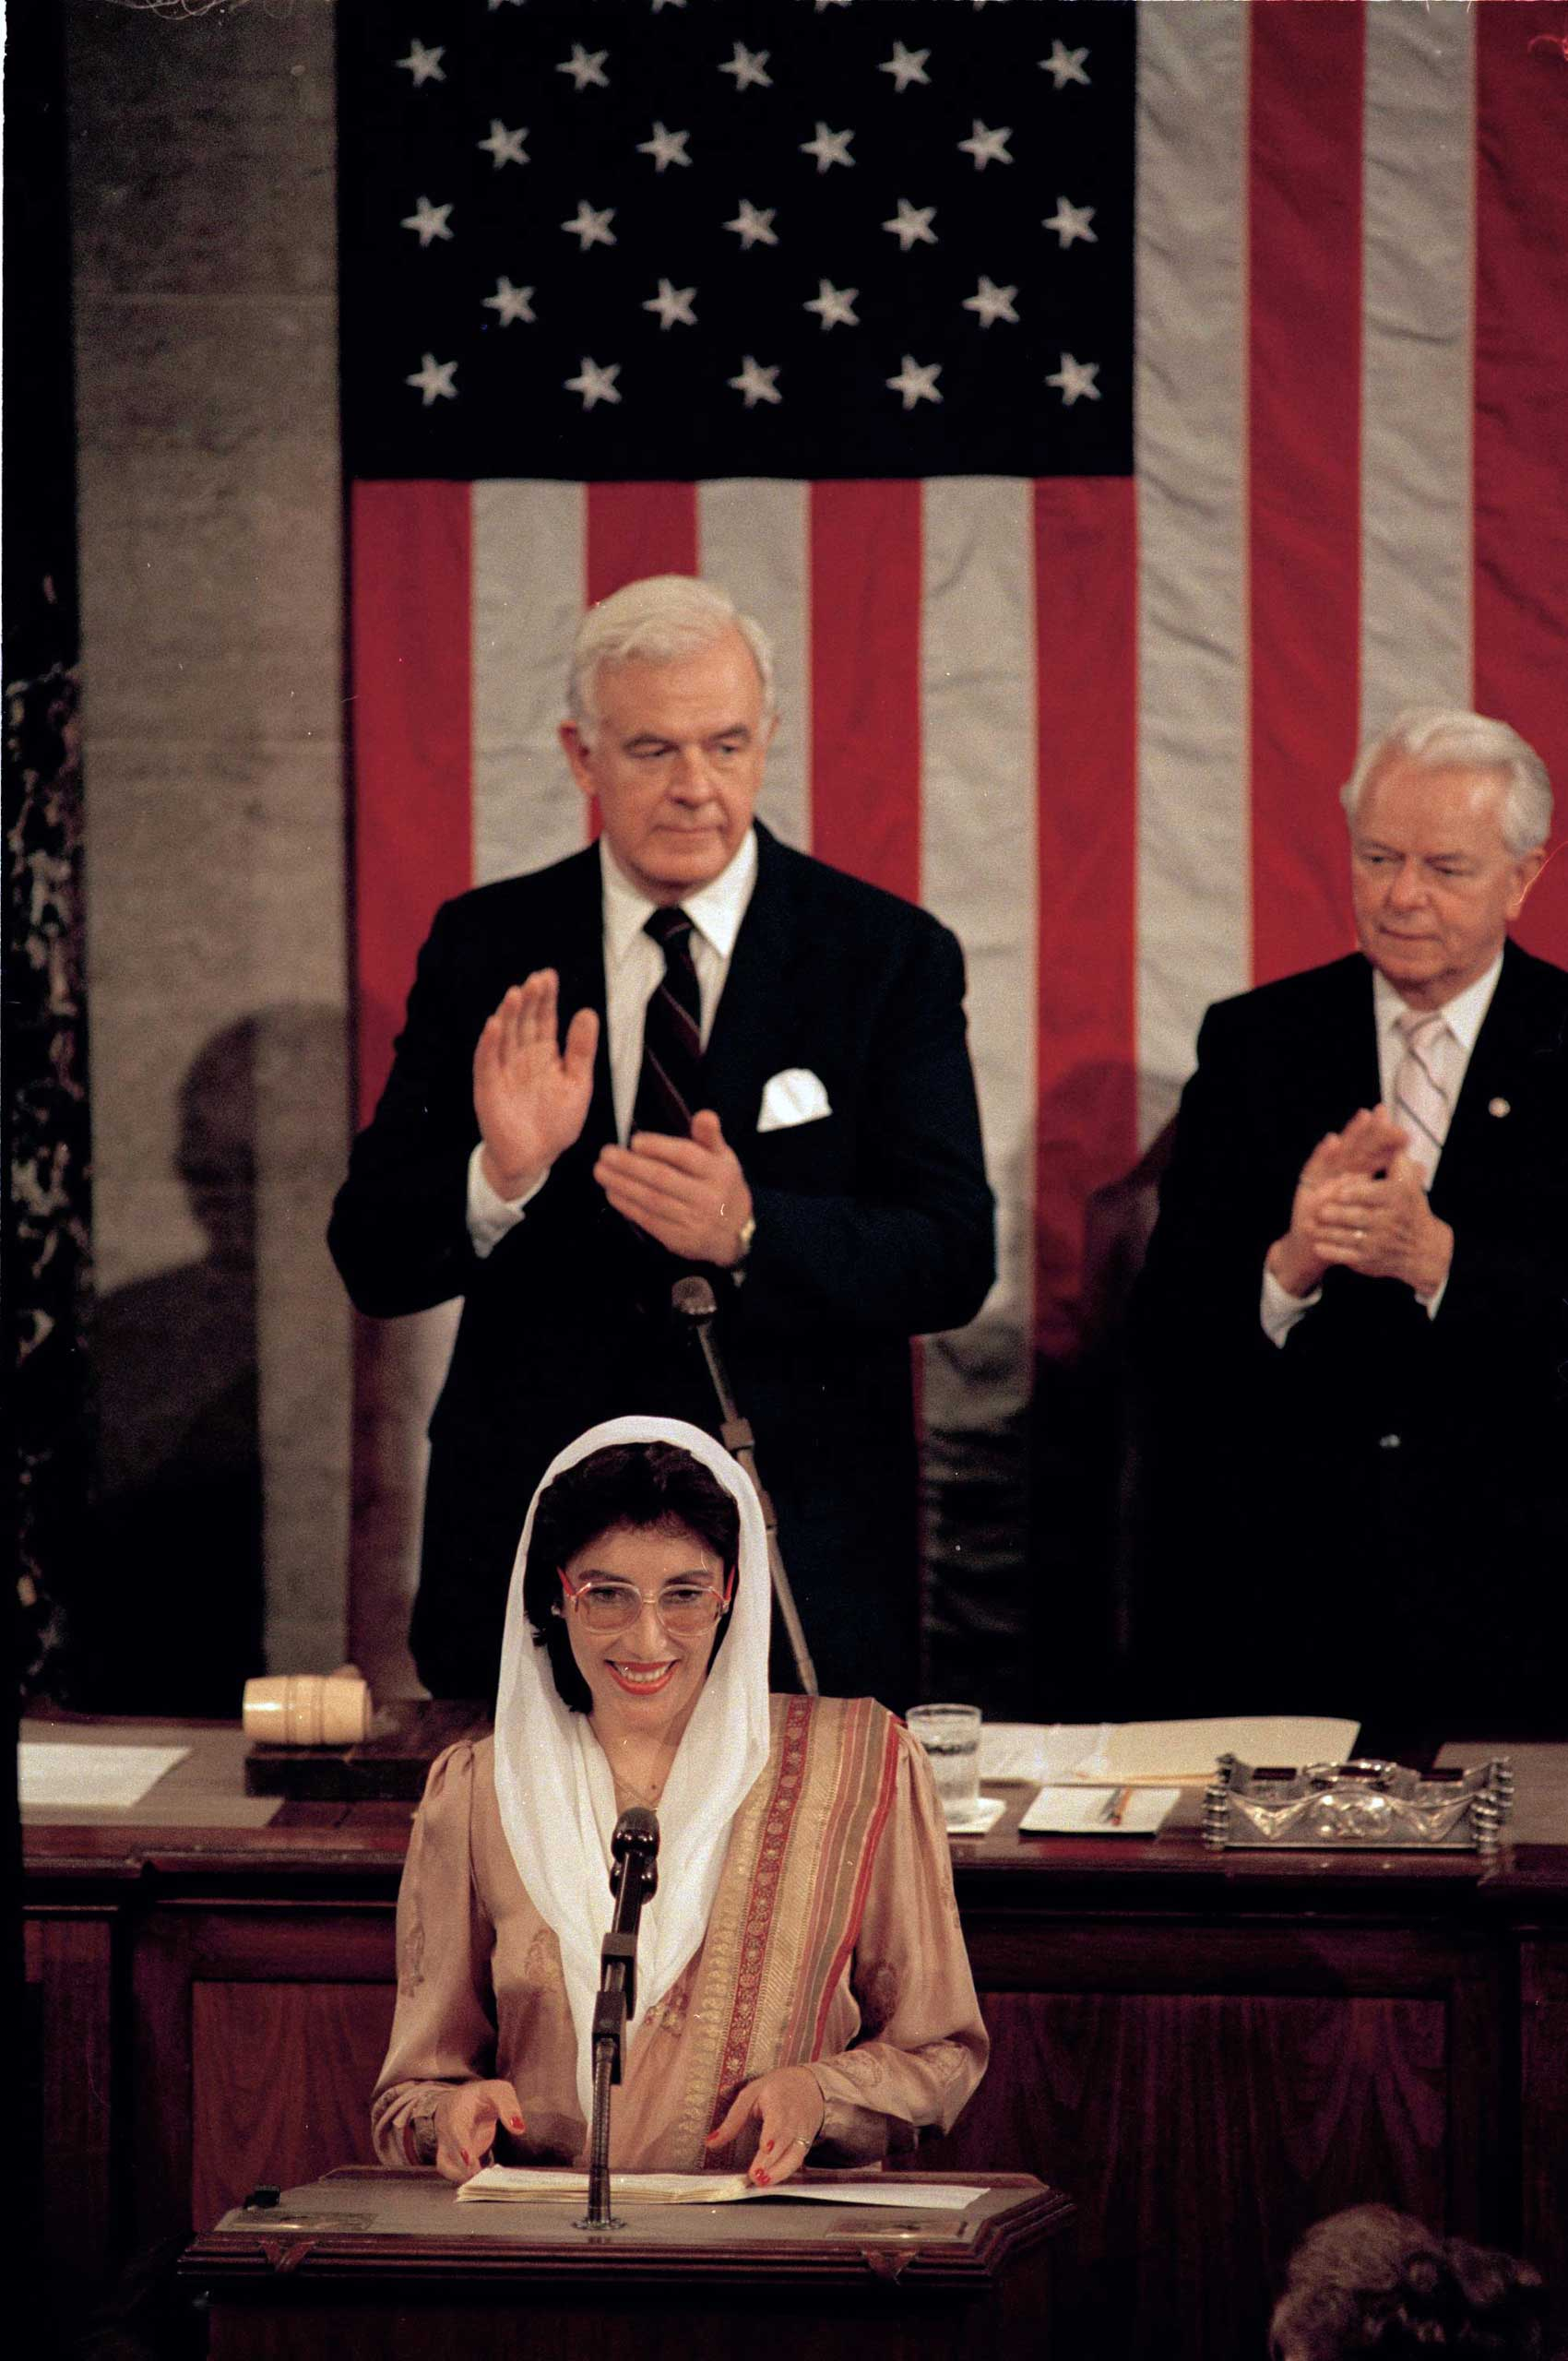 <b>Benazir Bhutto</b>, prime minister of Pakistan, addresses Congress on June 7, 1989. She was the first woman elected to lead an Islamic state, and she remains Pakistan's only woman prime minister to date. After serving two non-consecutive terms, she was exiled to Dubai in 1999. She returned to Pakistan in 2007 to run for the office again, and was assassinated.